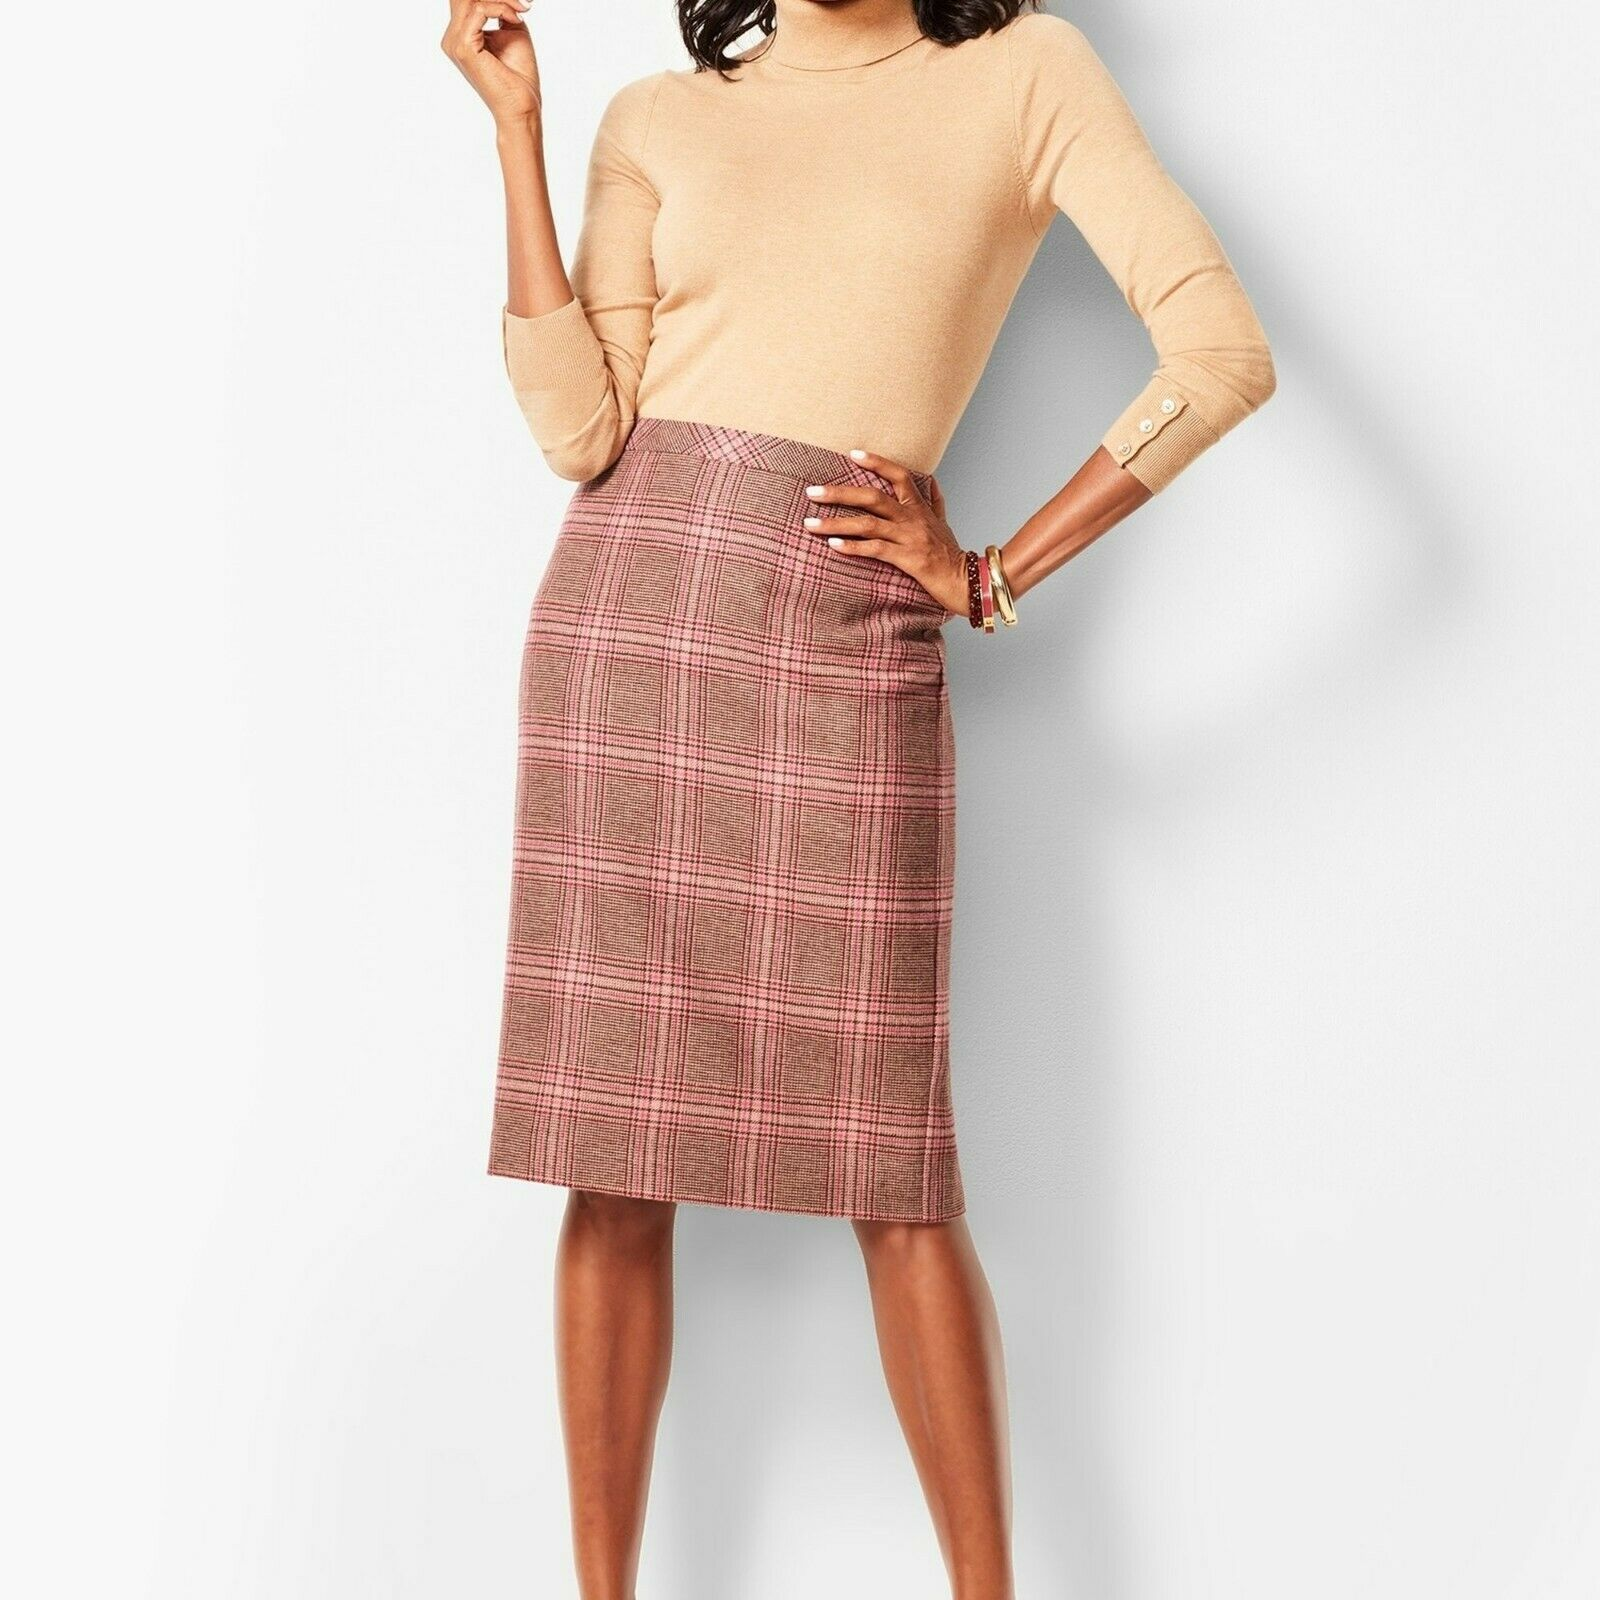 TALBOTS NWT  WOMEN PLUS GLEN PLAID FULLY LINED PENCIL SKIRT BROWN CORAL 14W